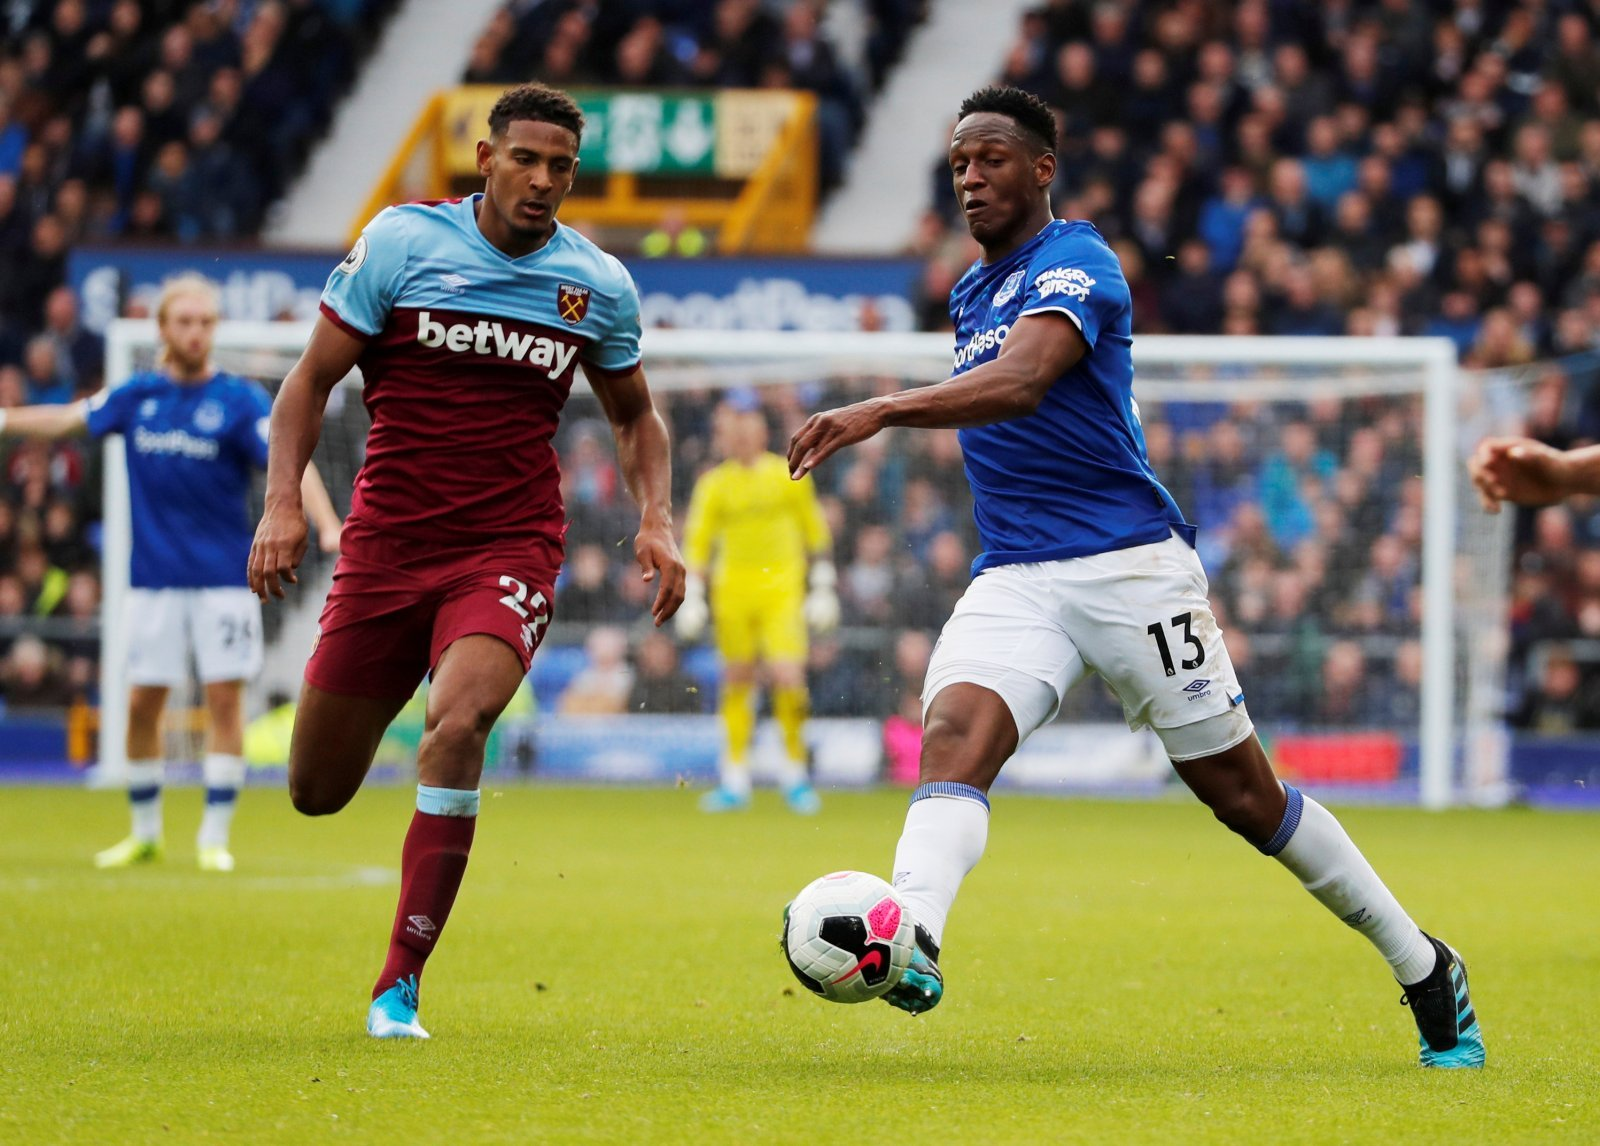 Unsung Hero: Everton's Yerry Mina overlooked in Marco Silva's must-win game with West Ham United